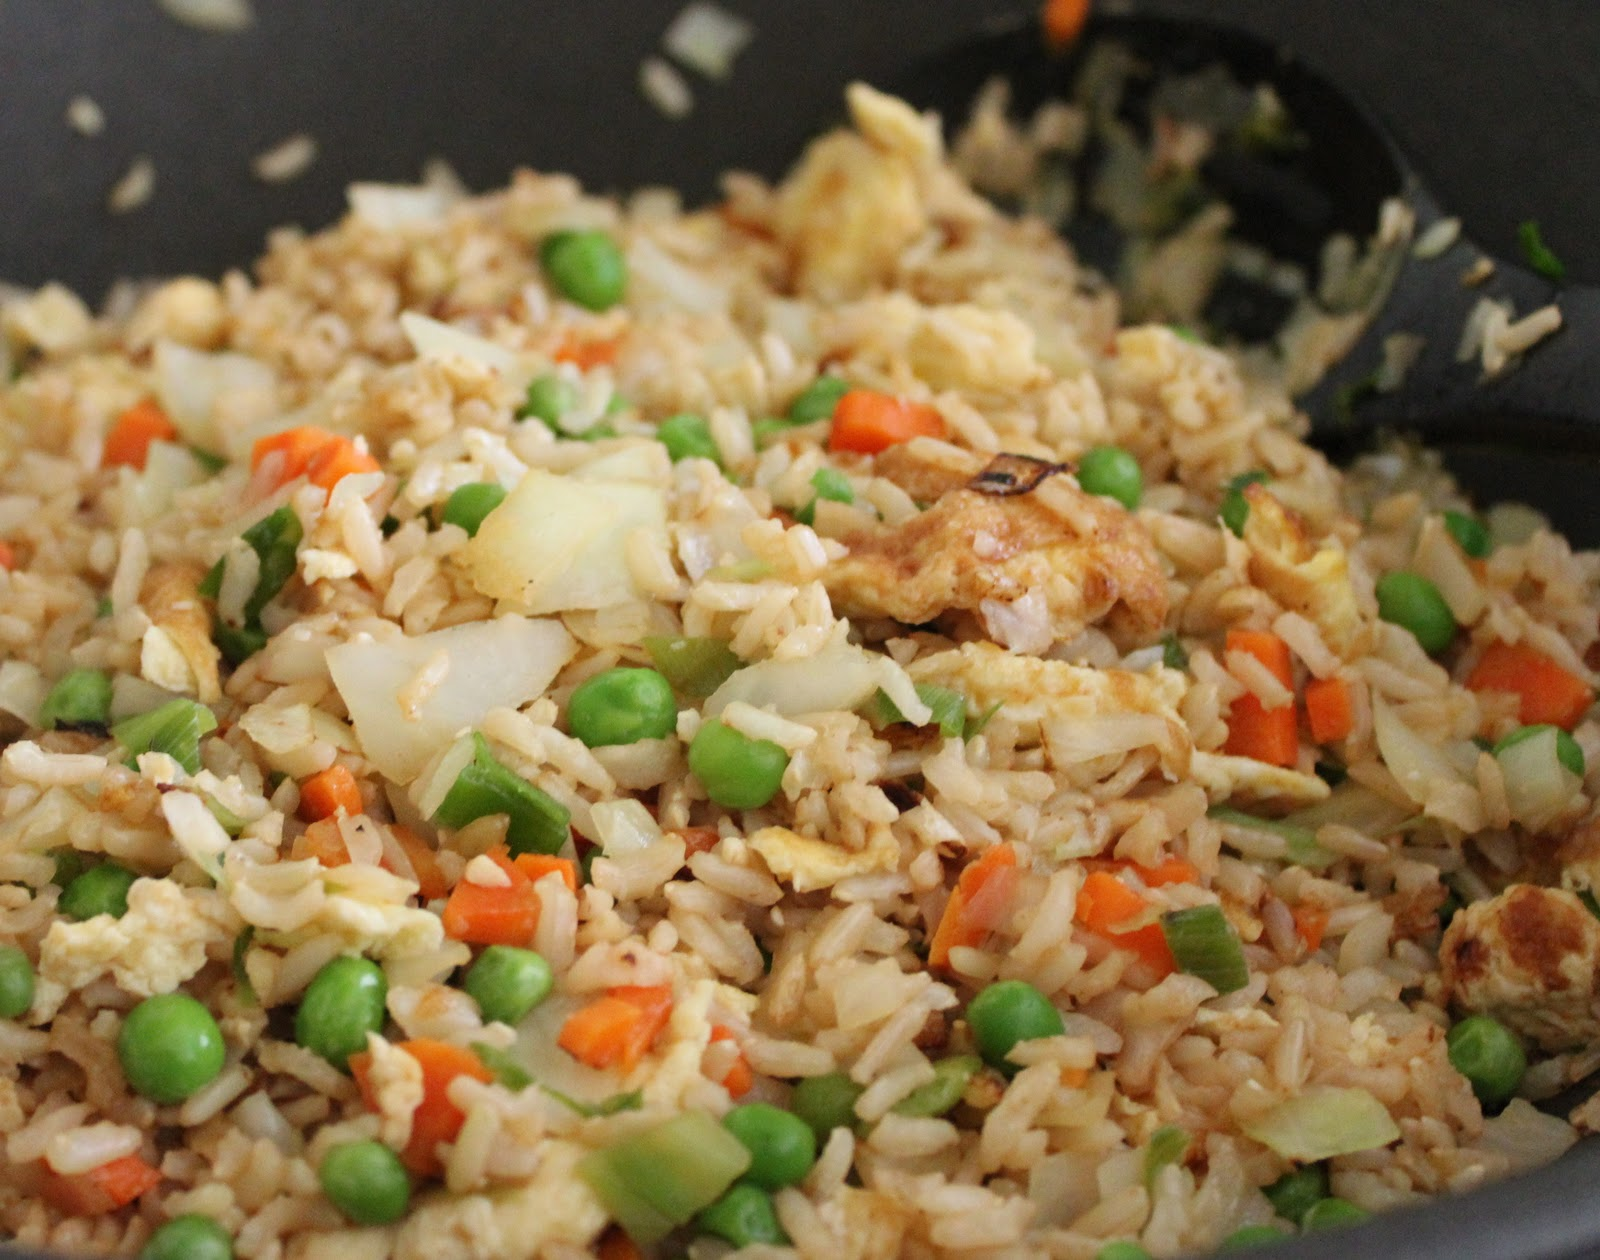 ... Cook Brown Rice – Vegetable Fried Rice and Kimchi Fried Rice Recipes